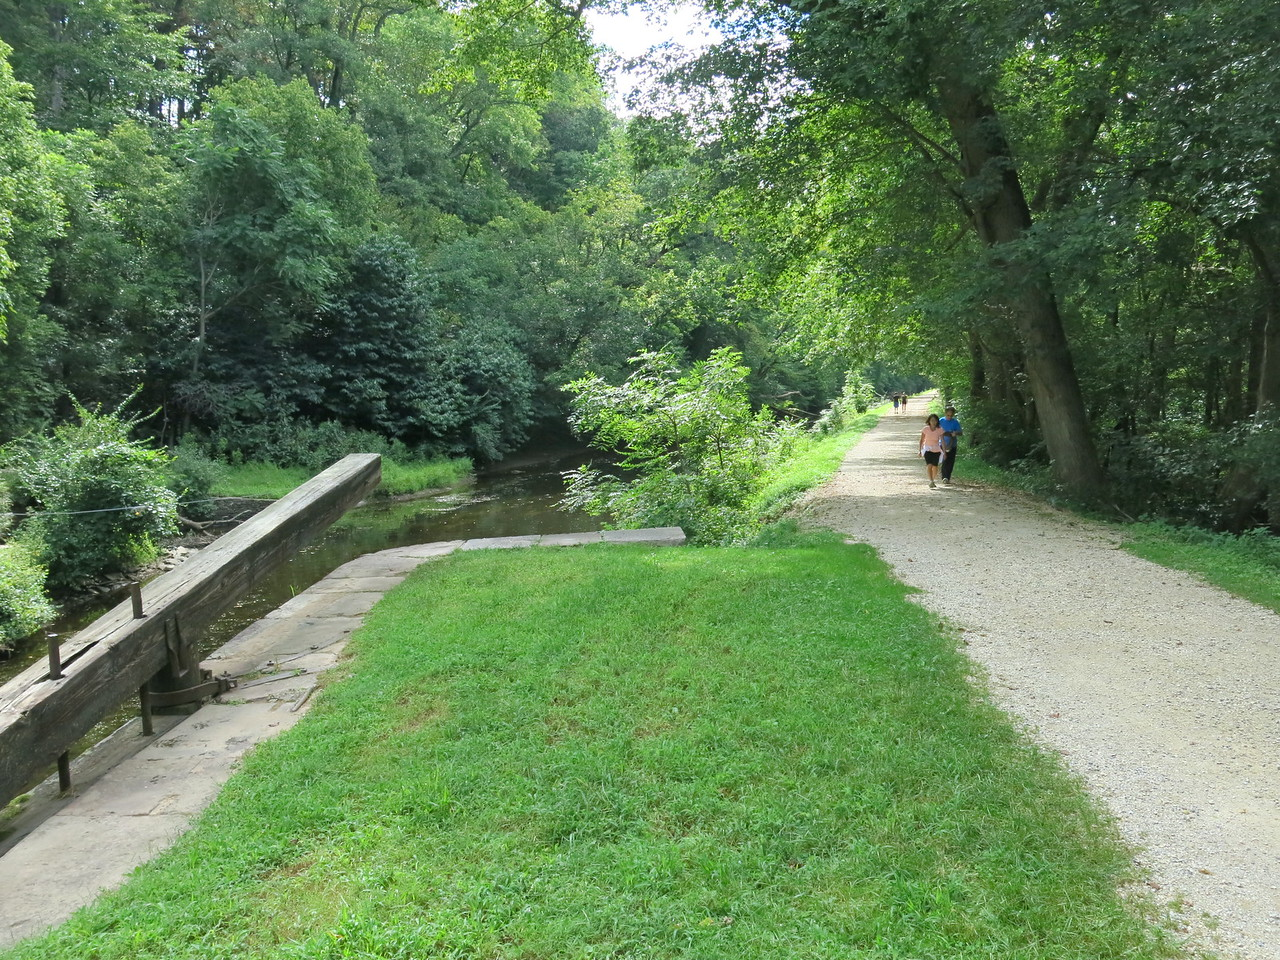 The towpath downstream from Lock 21